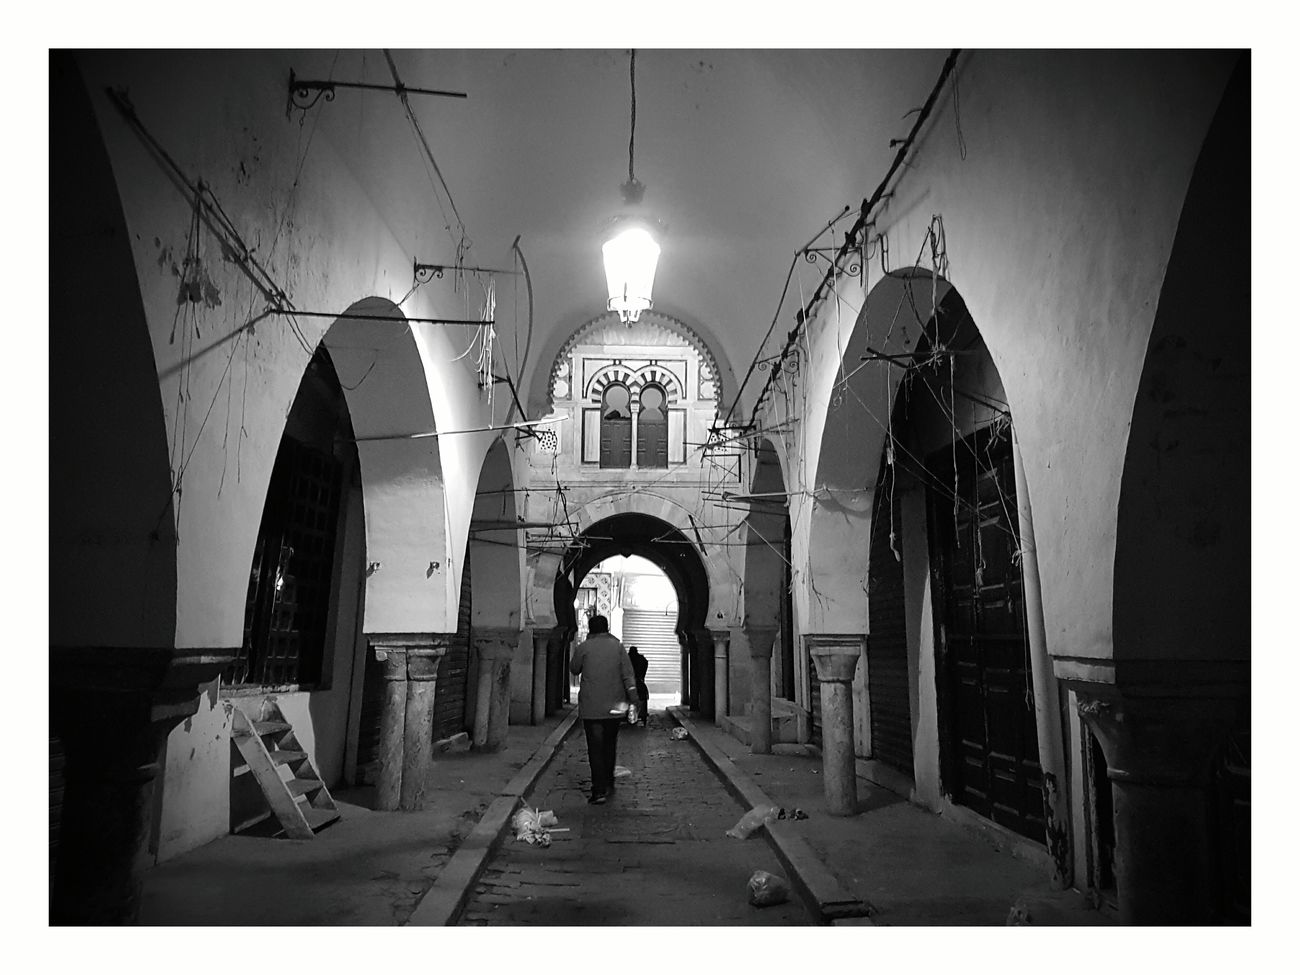 Street Light Outdoors Built Structure History Night Eyeem Tunisie Eyeem Tunisia Architecture Architectural Column Blackandwhite